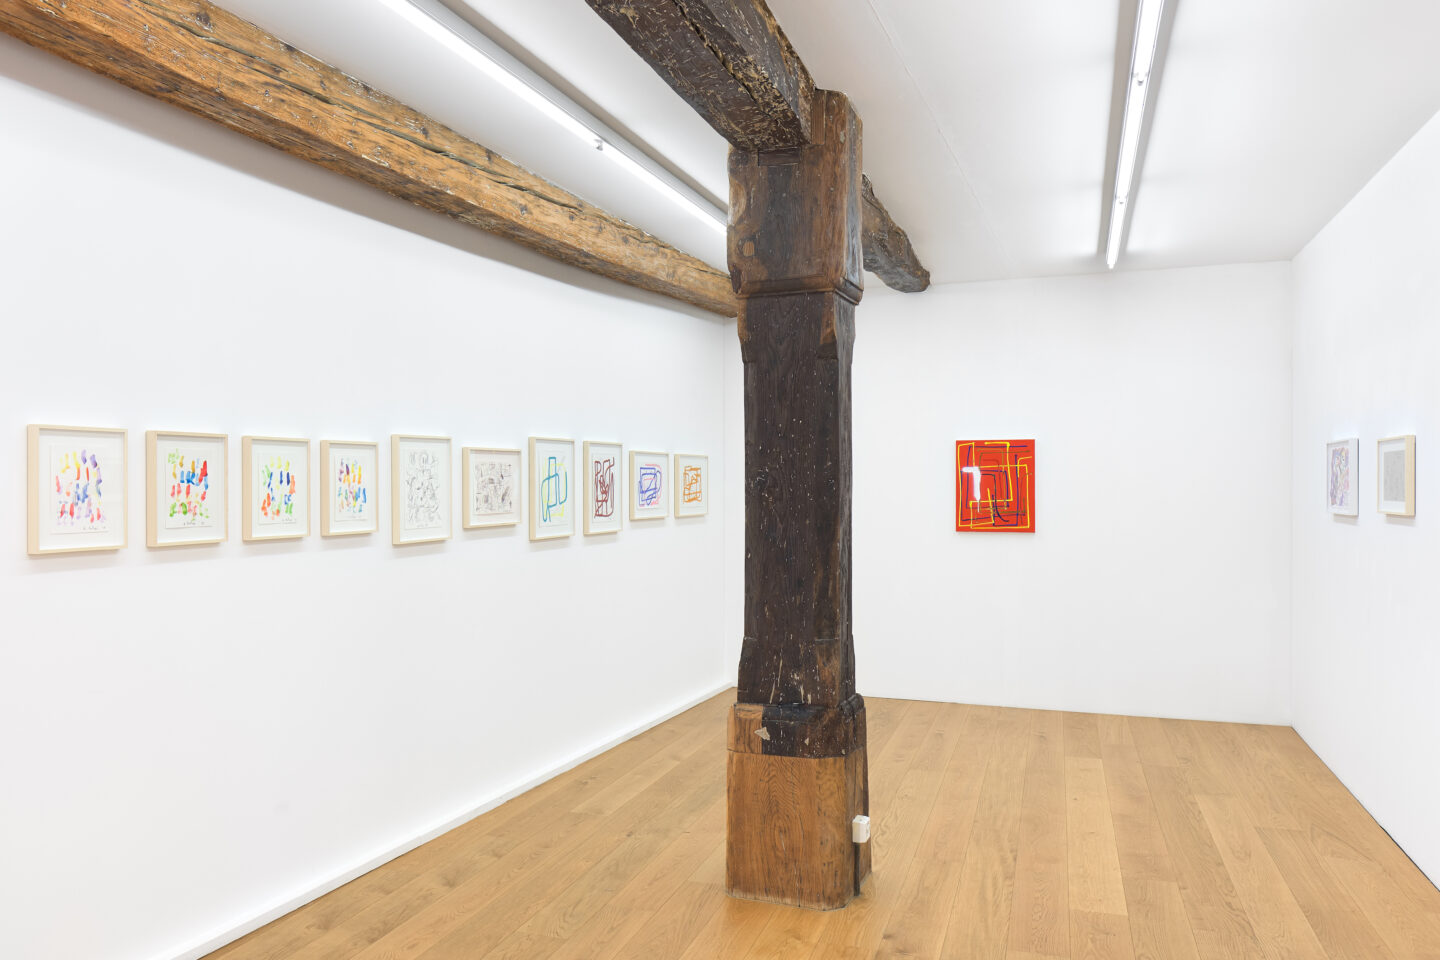 Exhibition View André Butzer Soloshow at Kirchgasse, Steckborn, 2019 / Courtesy: the artist and Kirchgasse